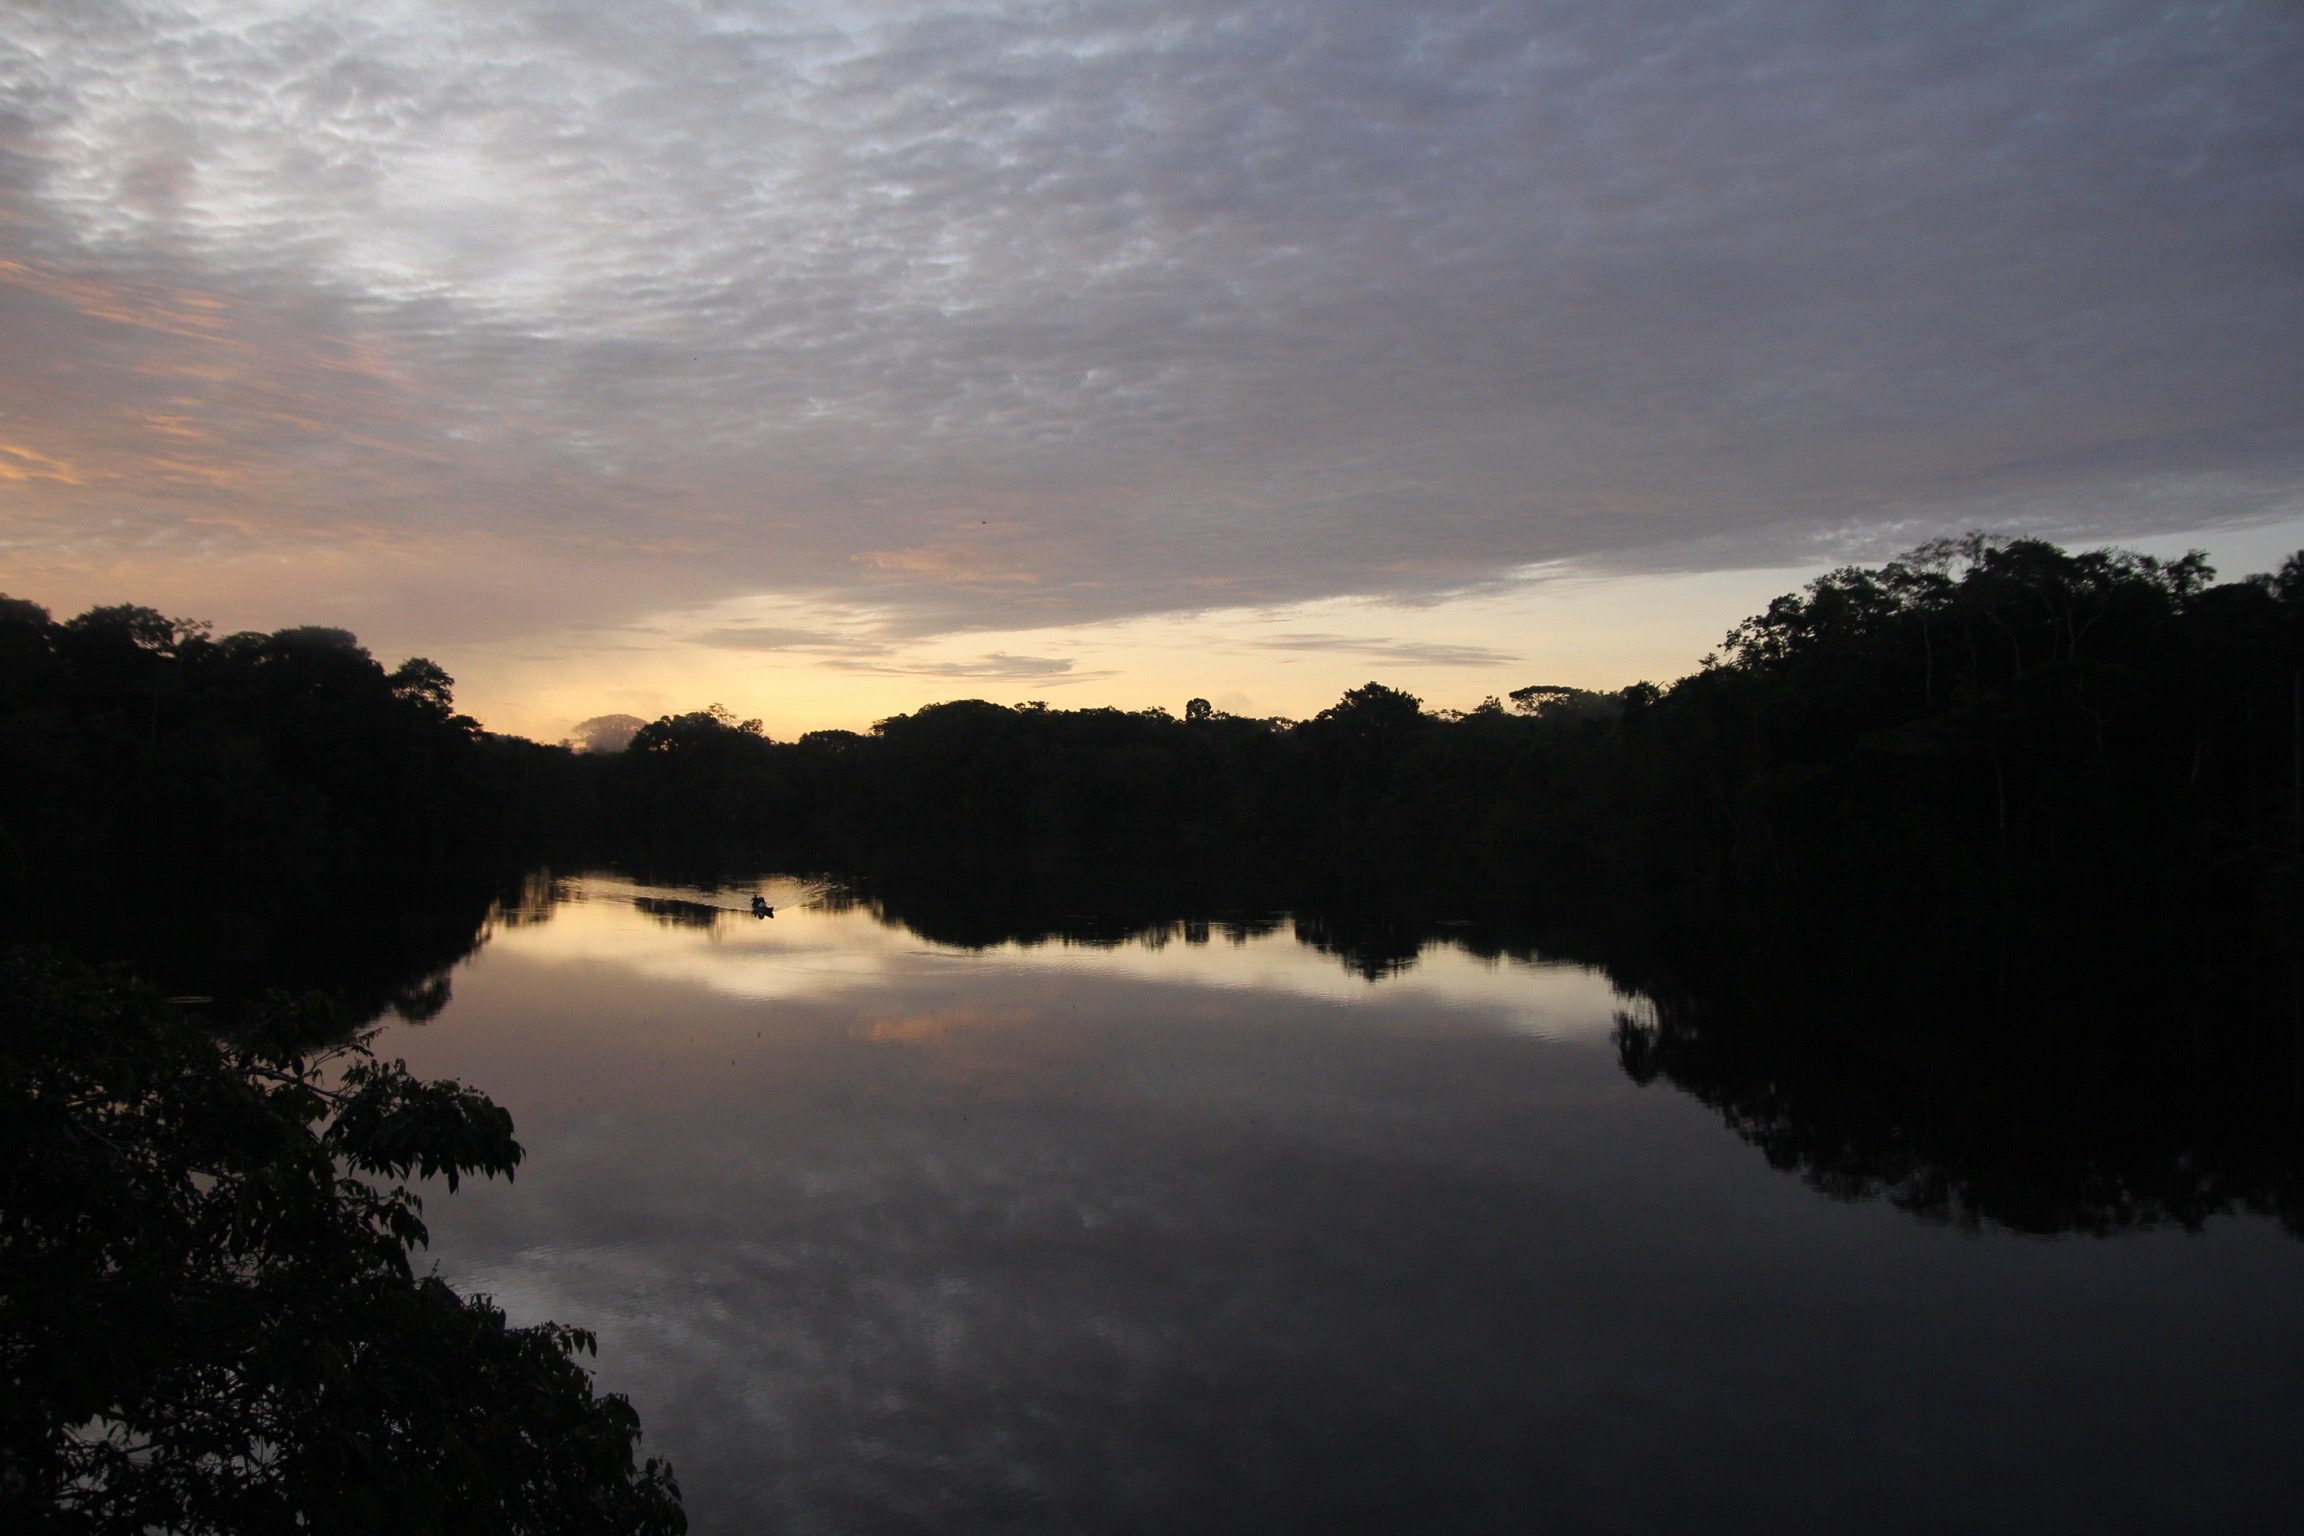 Amazon waters at sunset, Ecuador